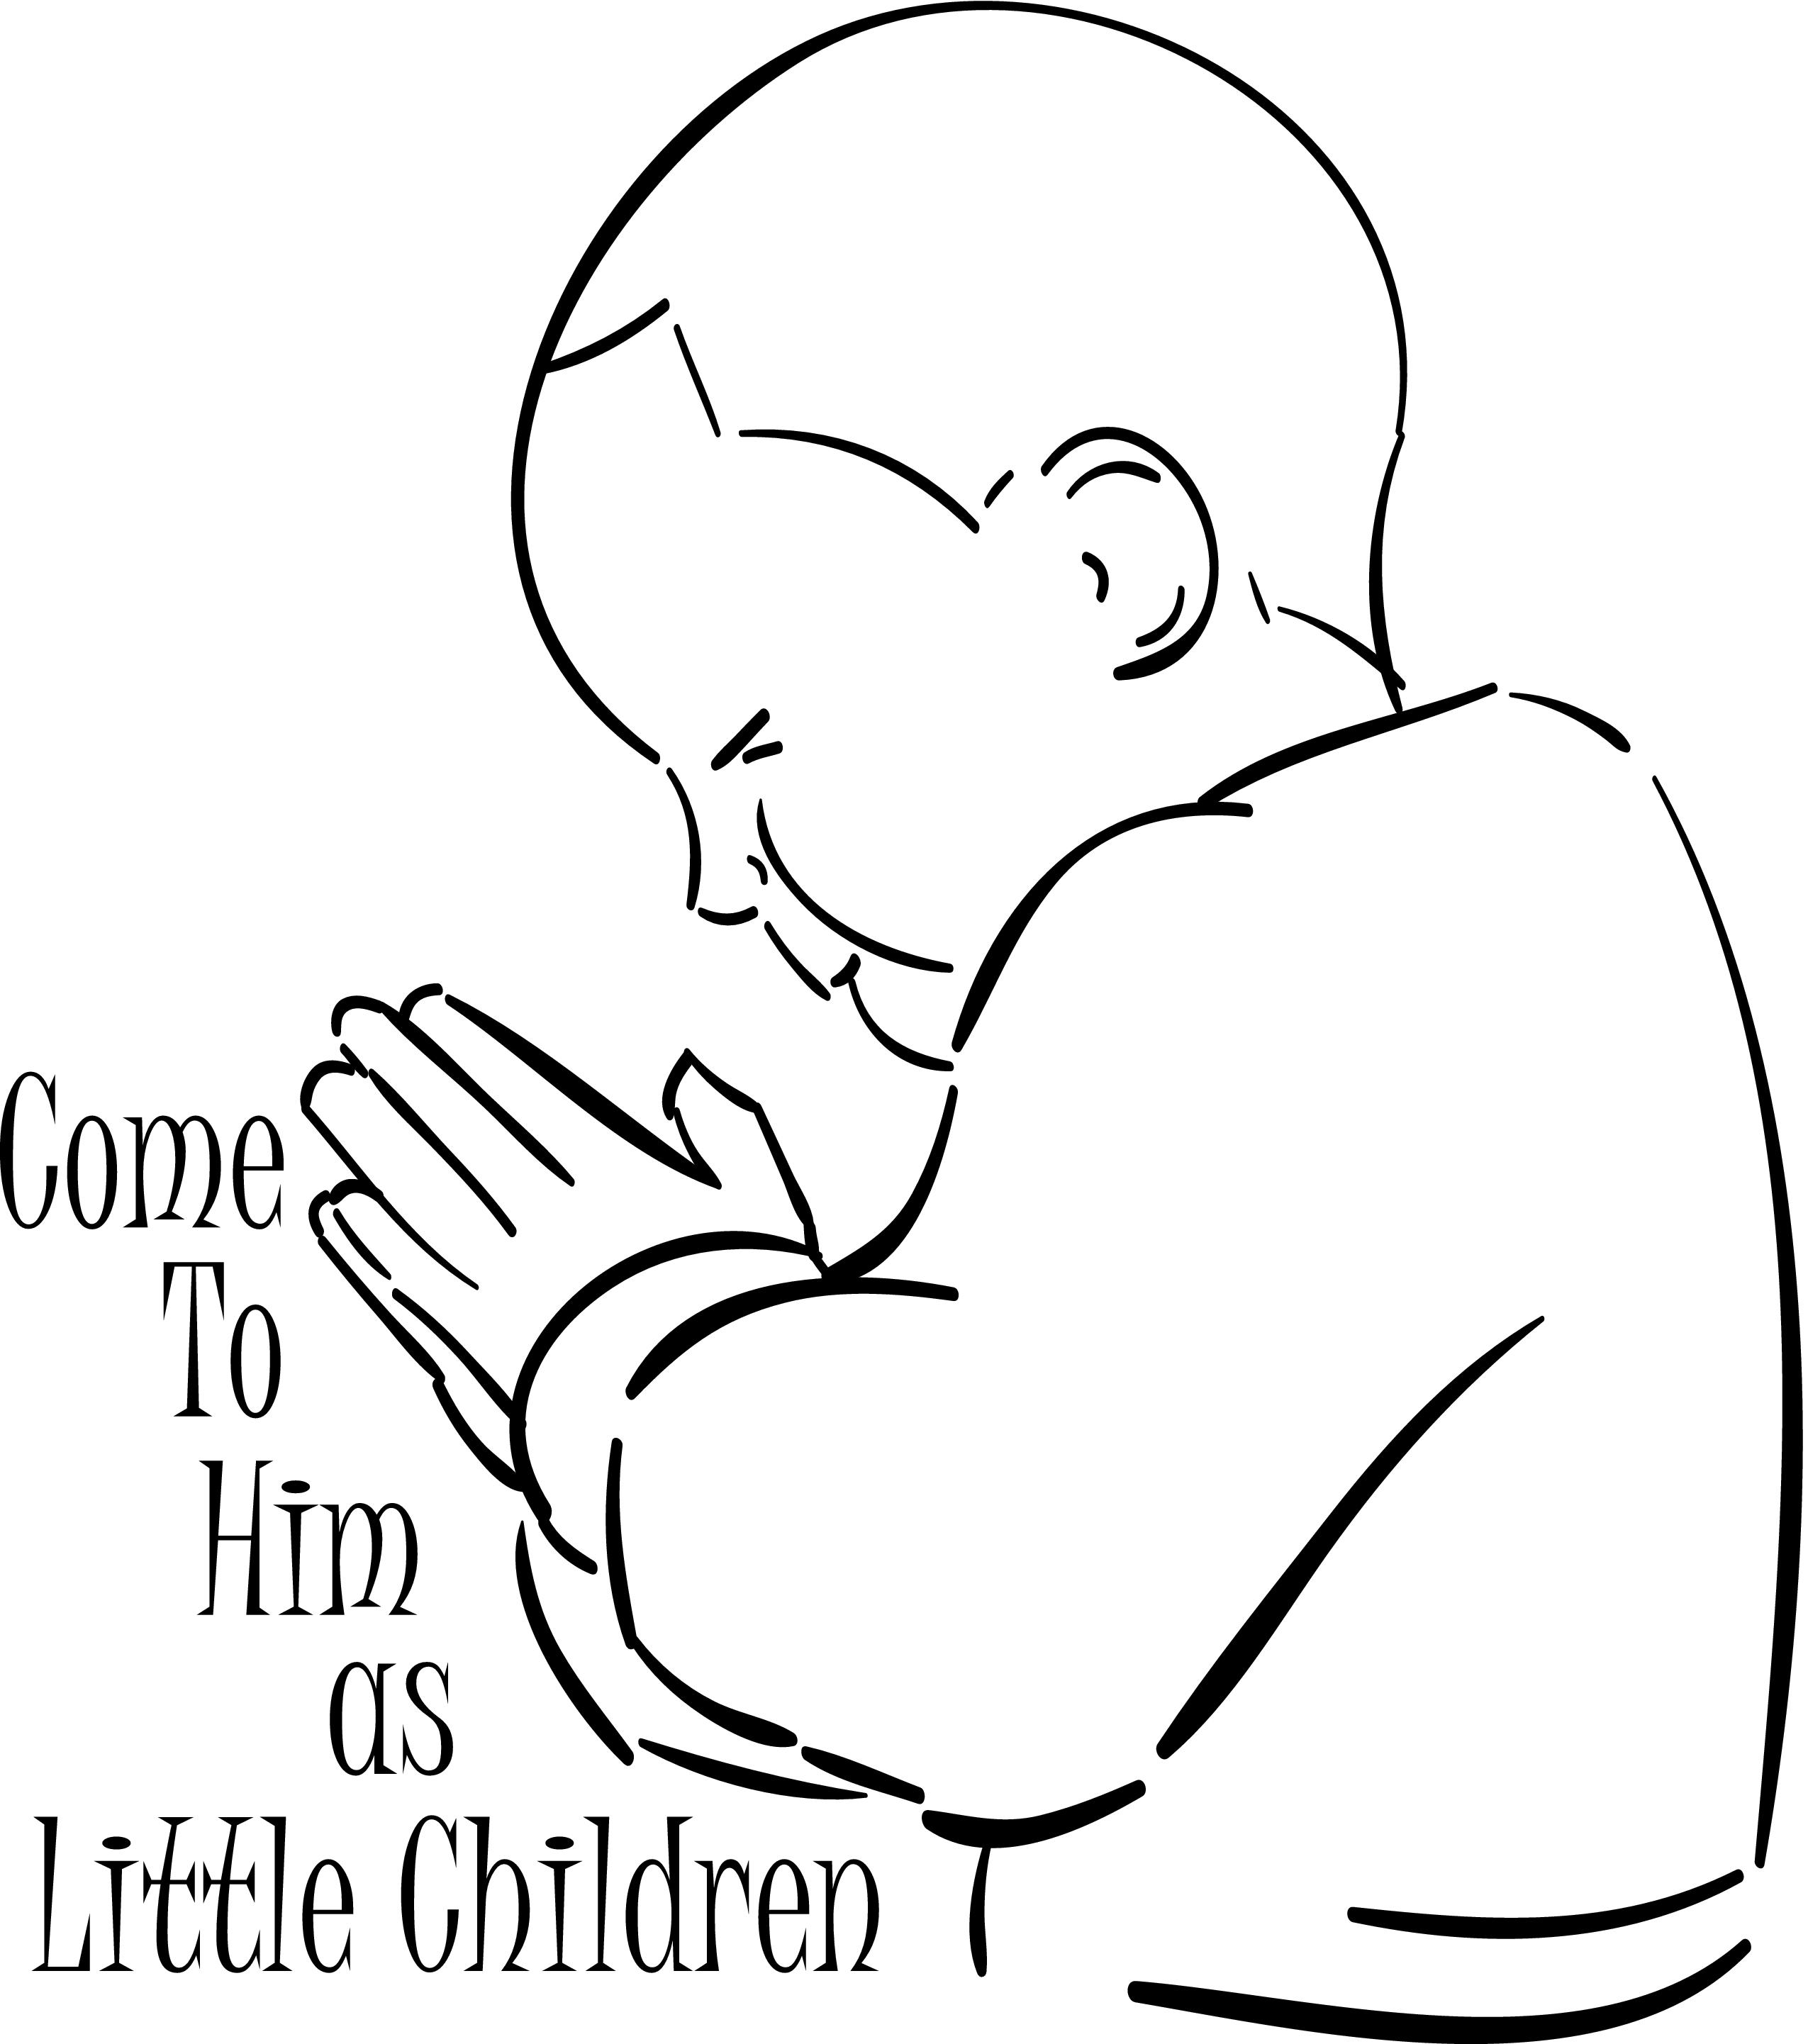 Free Youth Praying Cliparts, Download Free Clip Art, Free